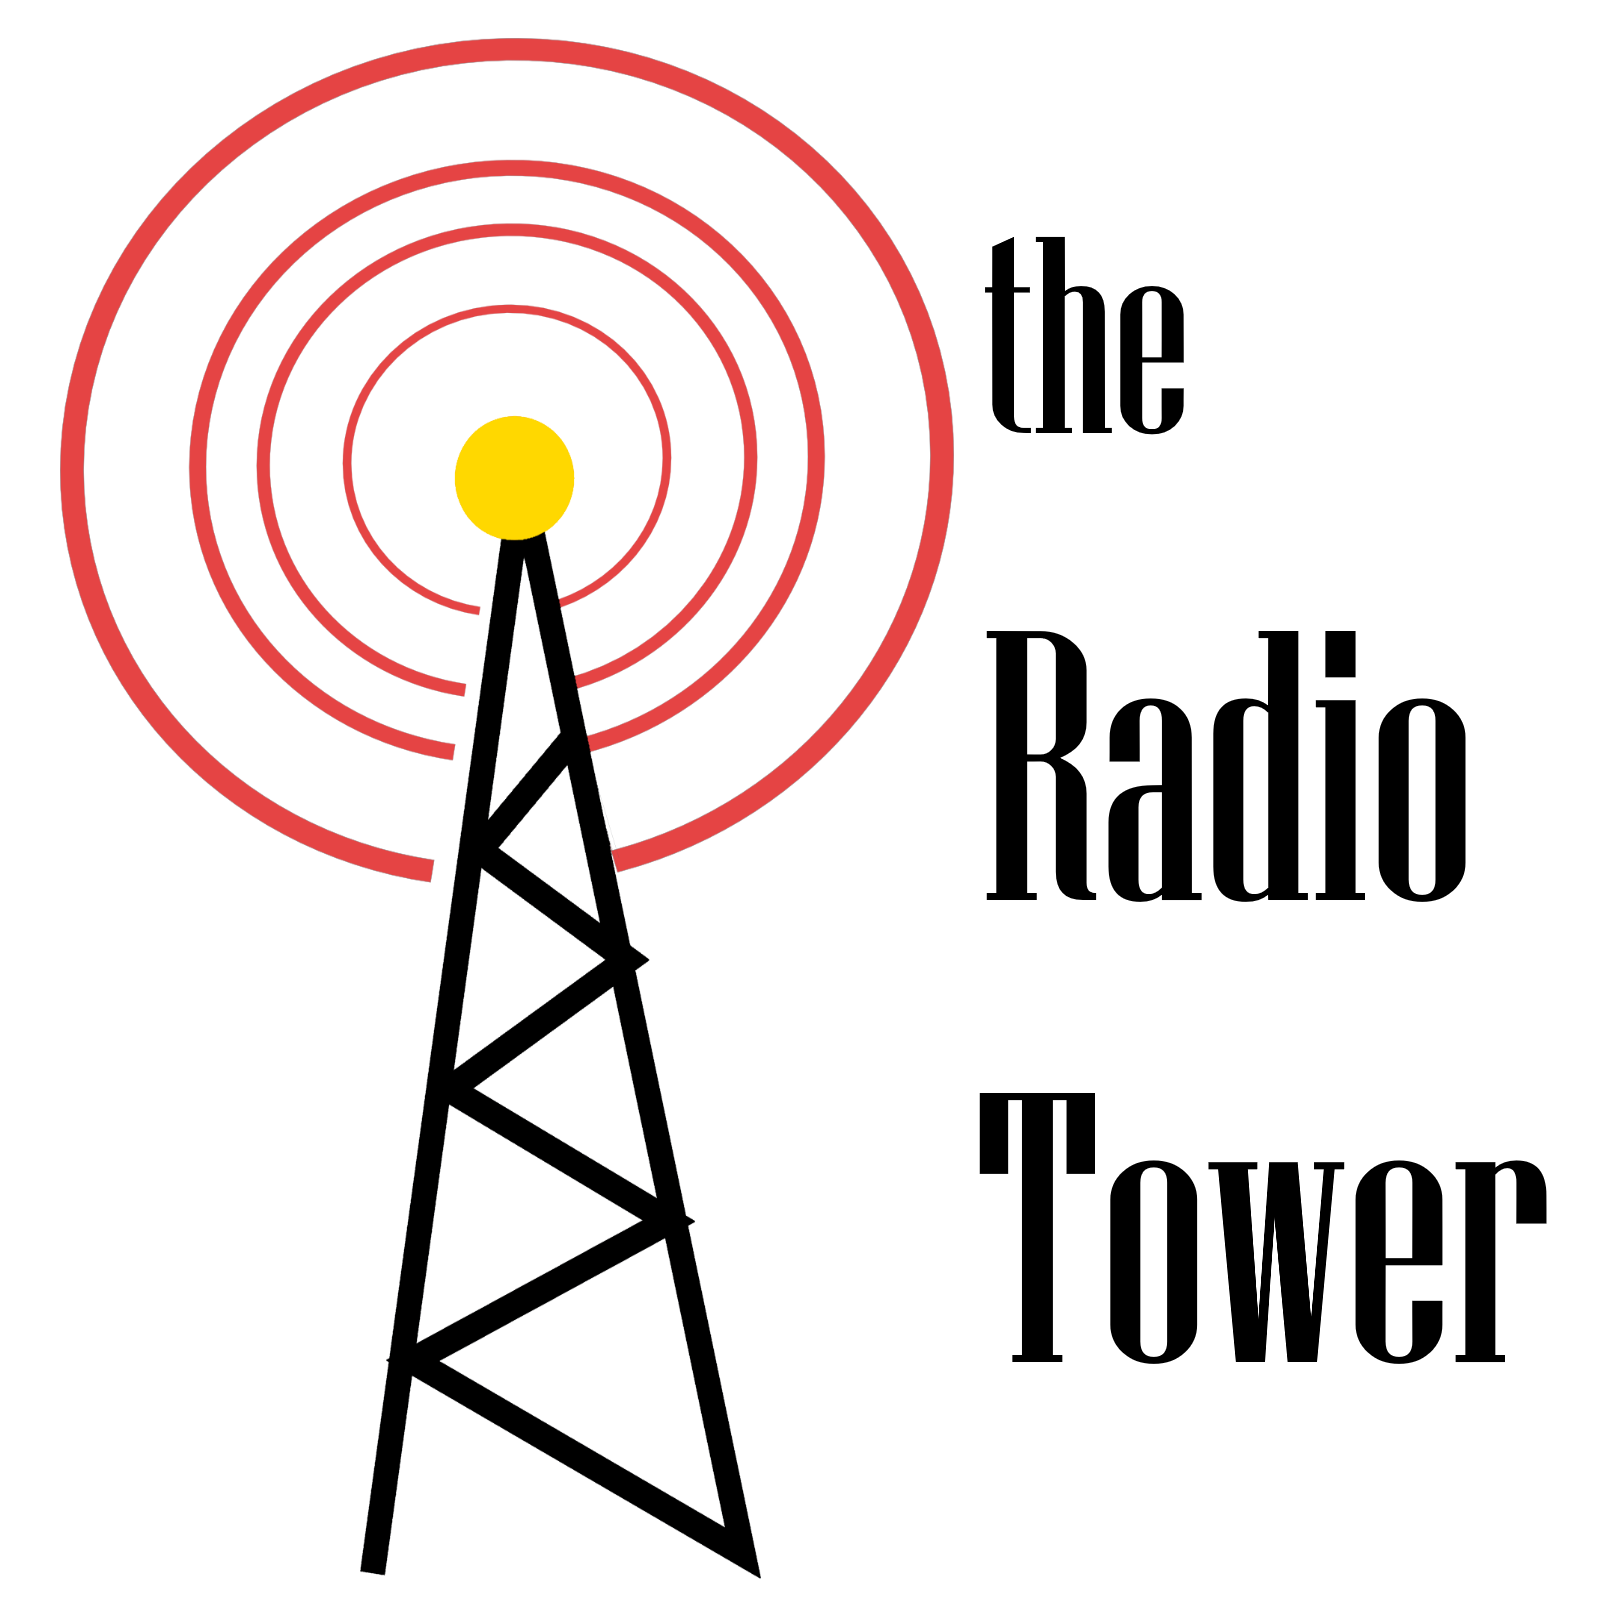 Radio Tower 17: Robert Ottone and Bullet Bob Ottone show art